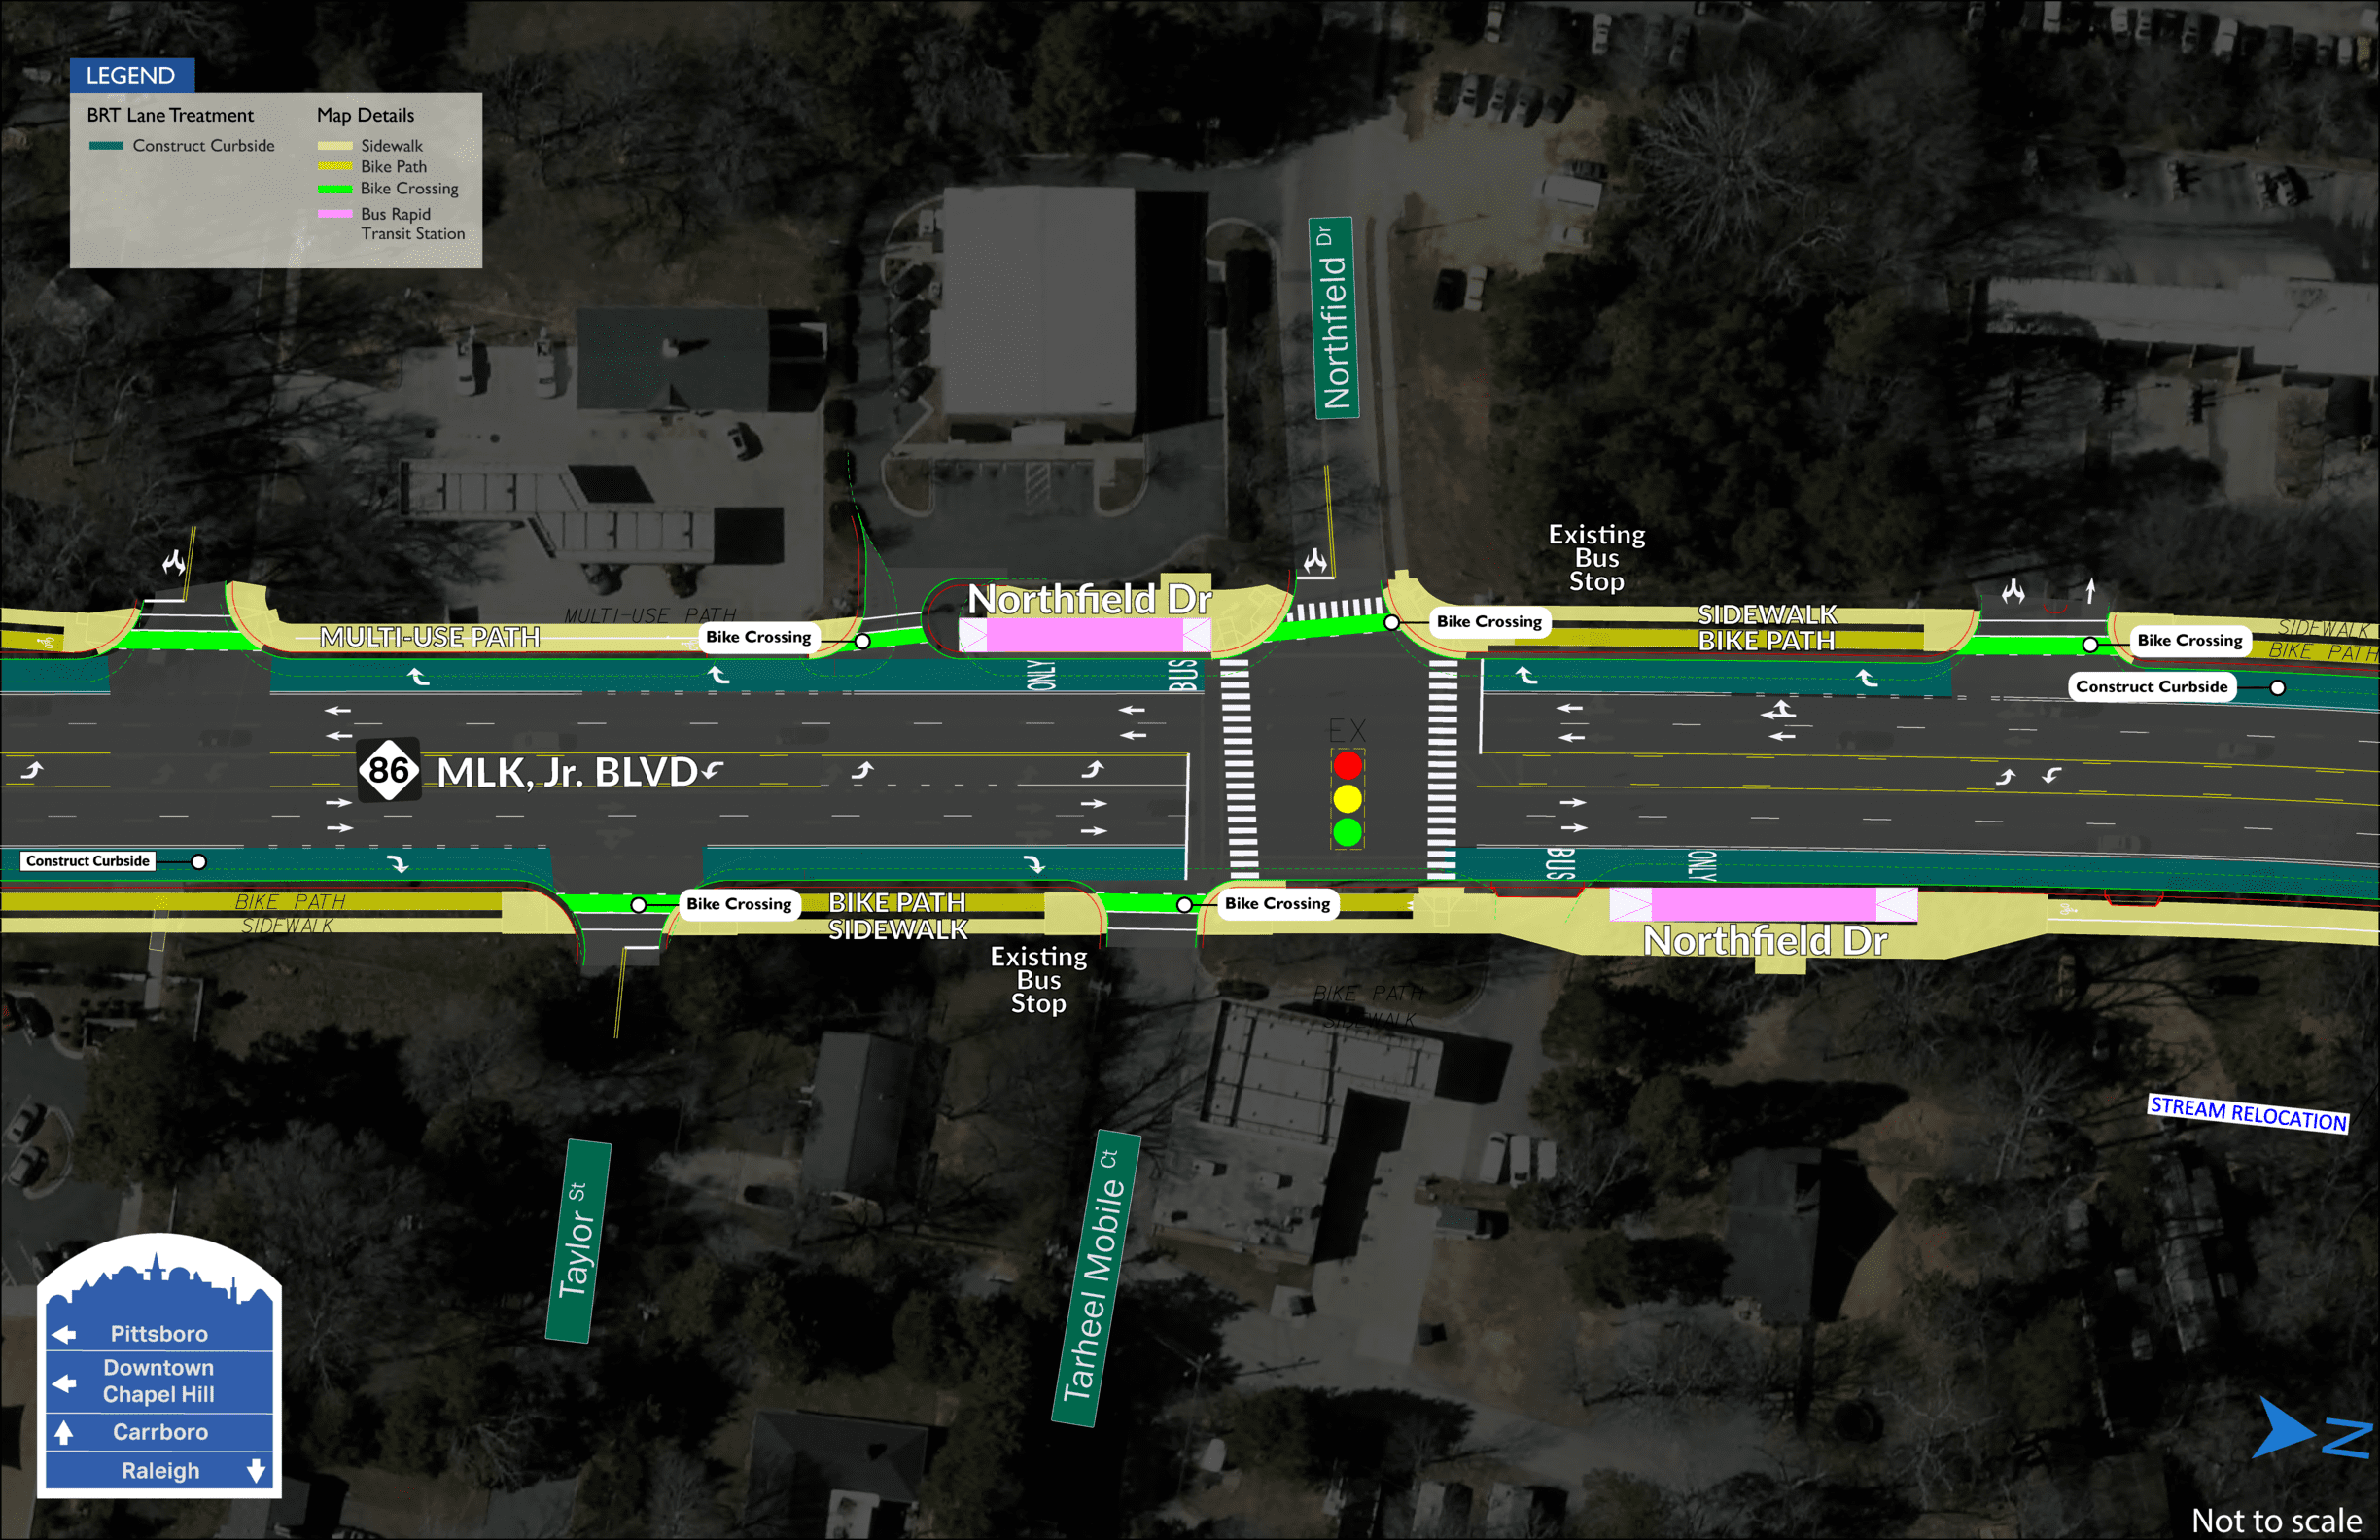 Northfield BRT map showing two stations on both sides of MLK Jr. Boulevard, divided by Northfield Drive.